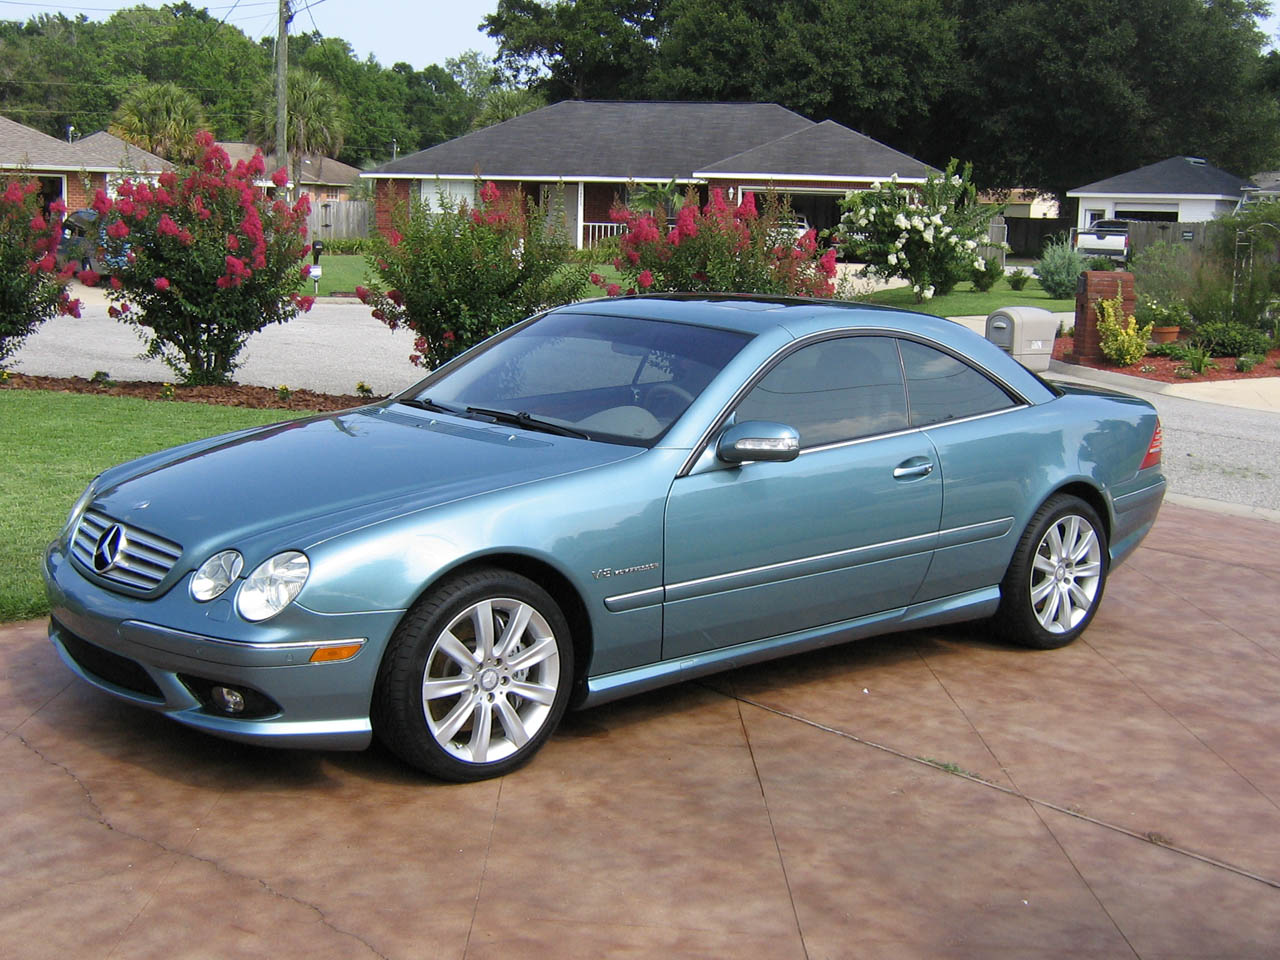 2003 Mercedes-Benz CL55 AMG